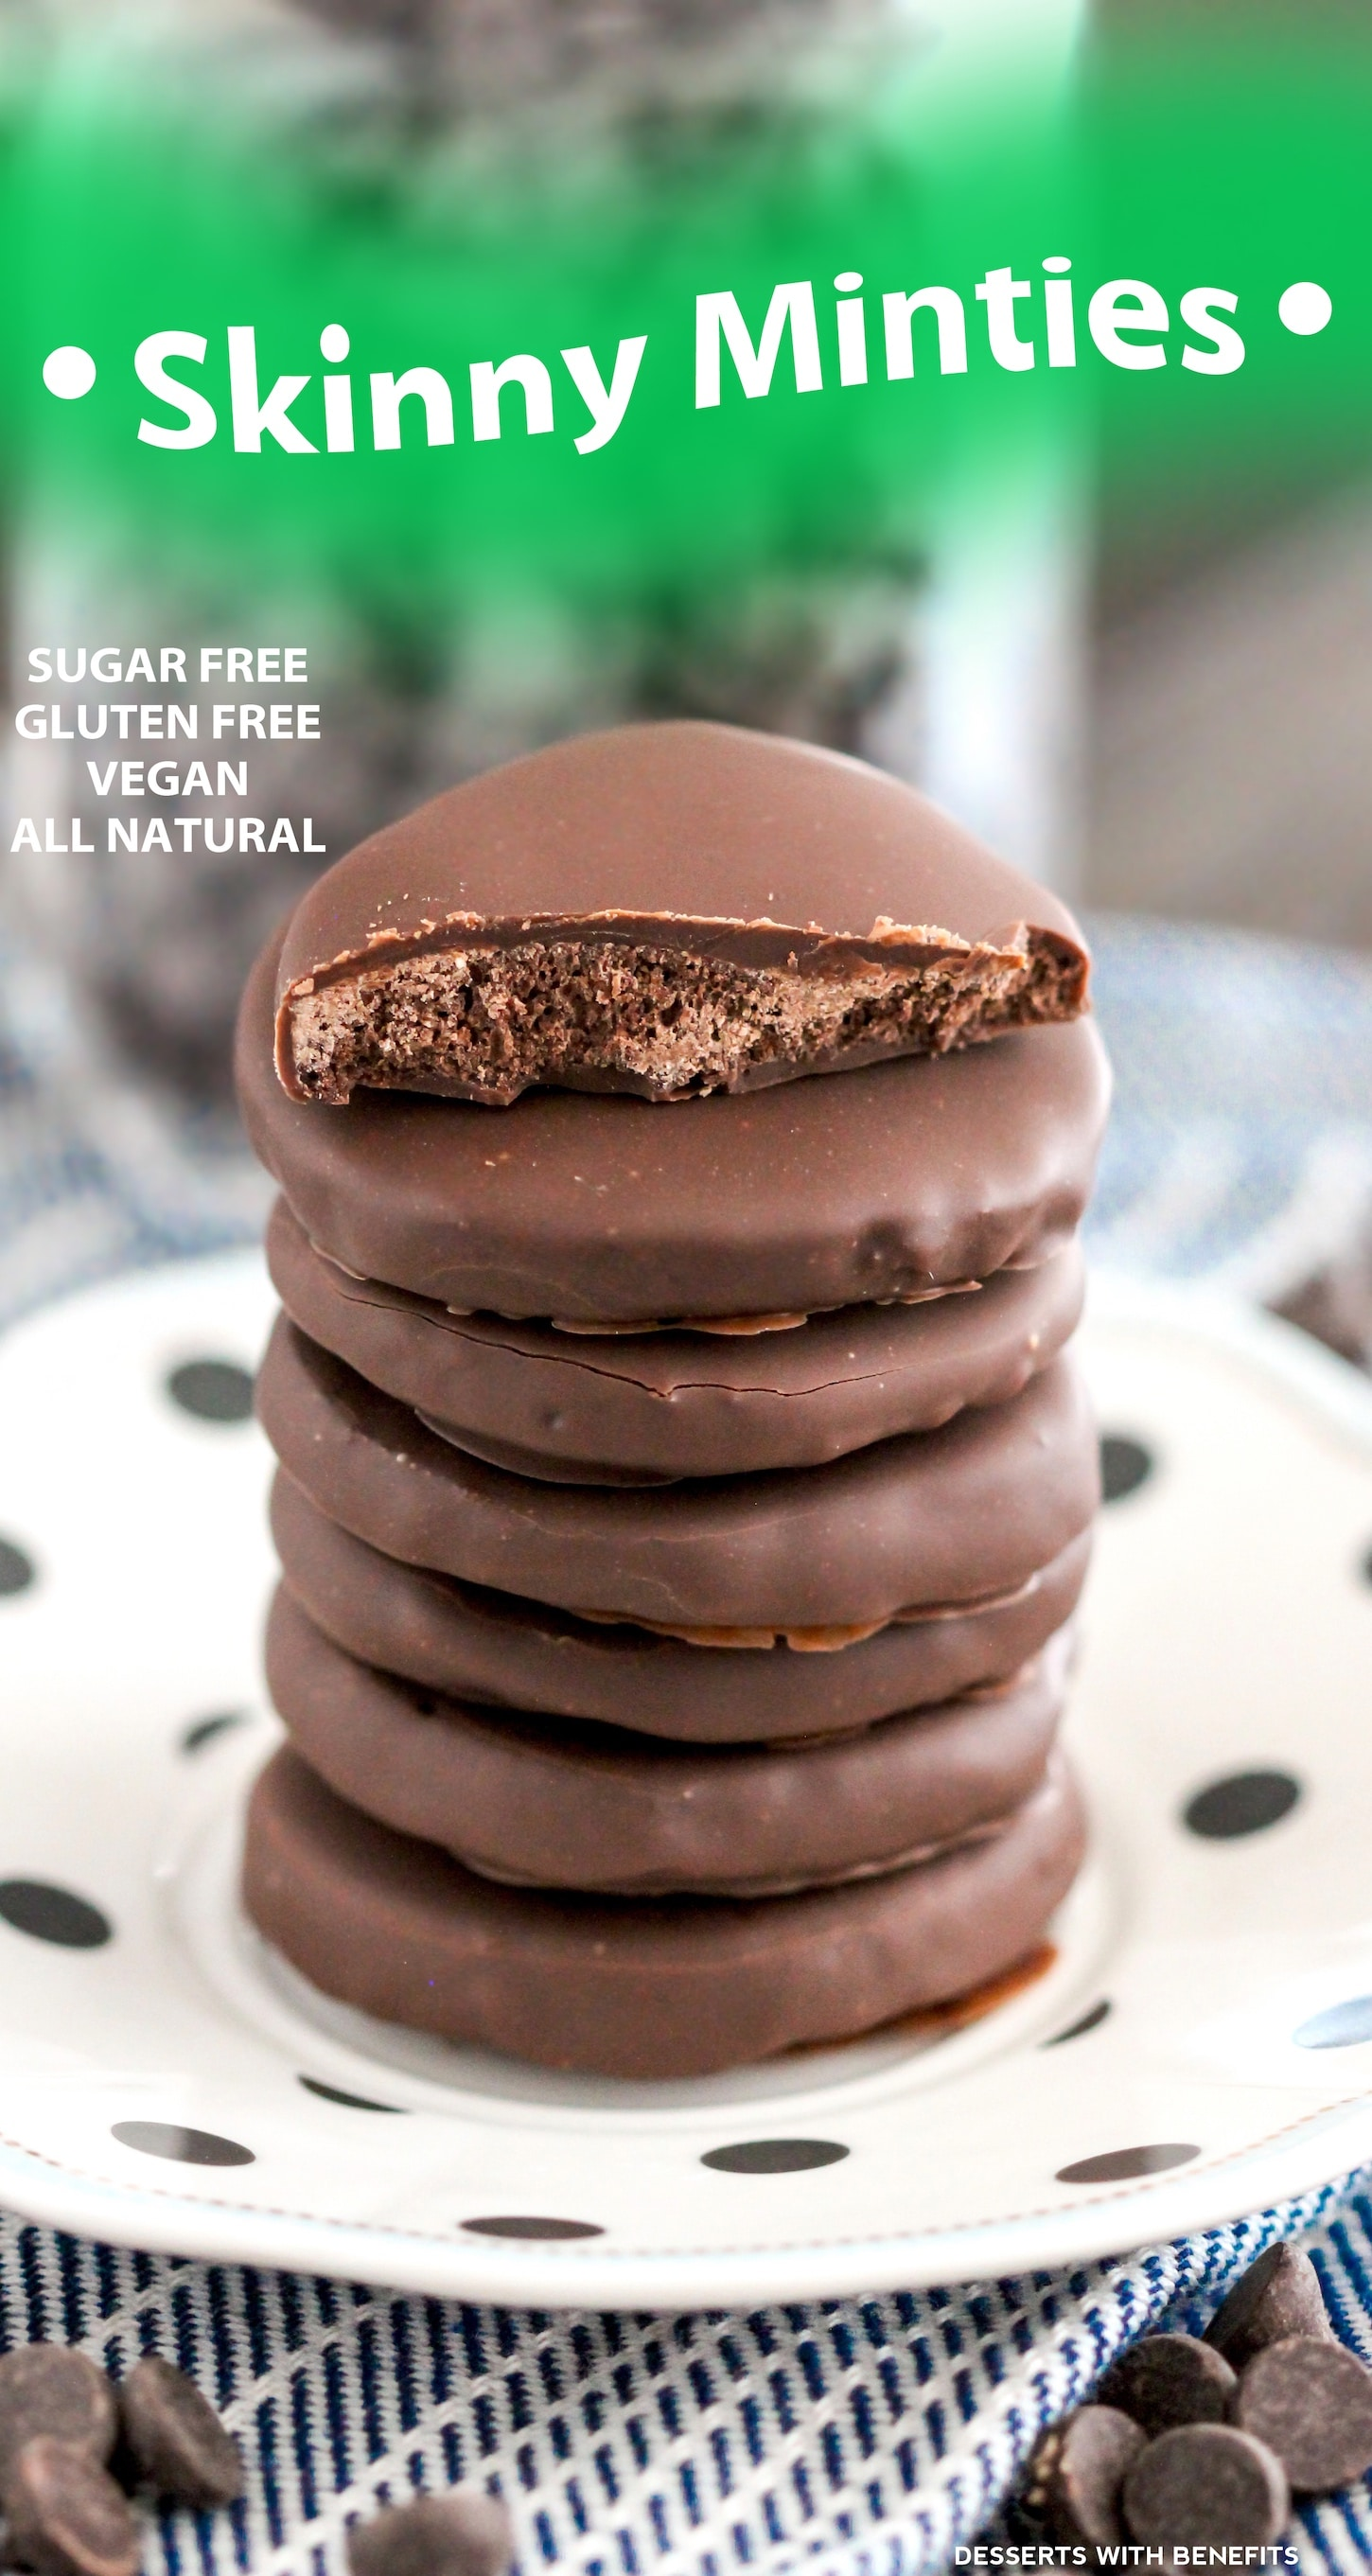 Girl Scout cookies are here so why not try healthy versions instead? These Homemade Thin Mints are better for you, yet taste just like the original! (all natural, refined sugar free, gluten free, vegan) - Healthy Dessert Recipes at the Desserts With Benefits Blog